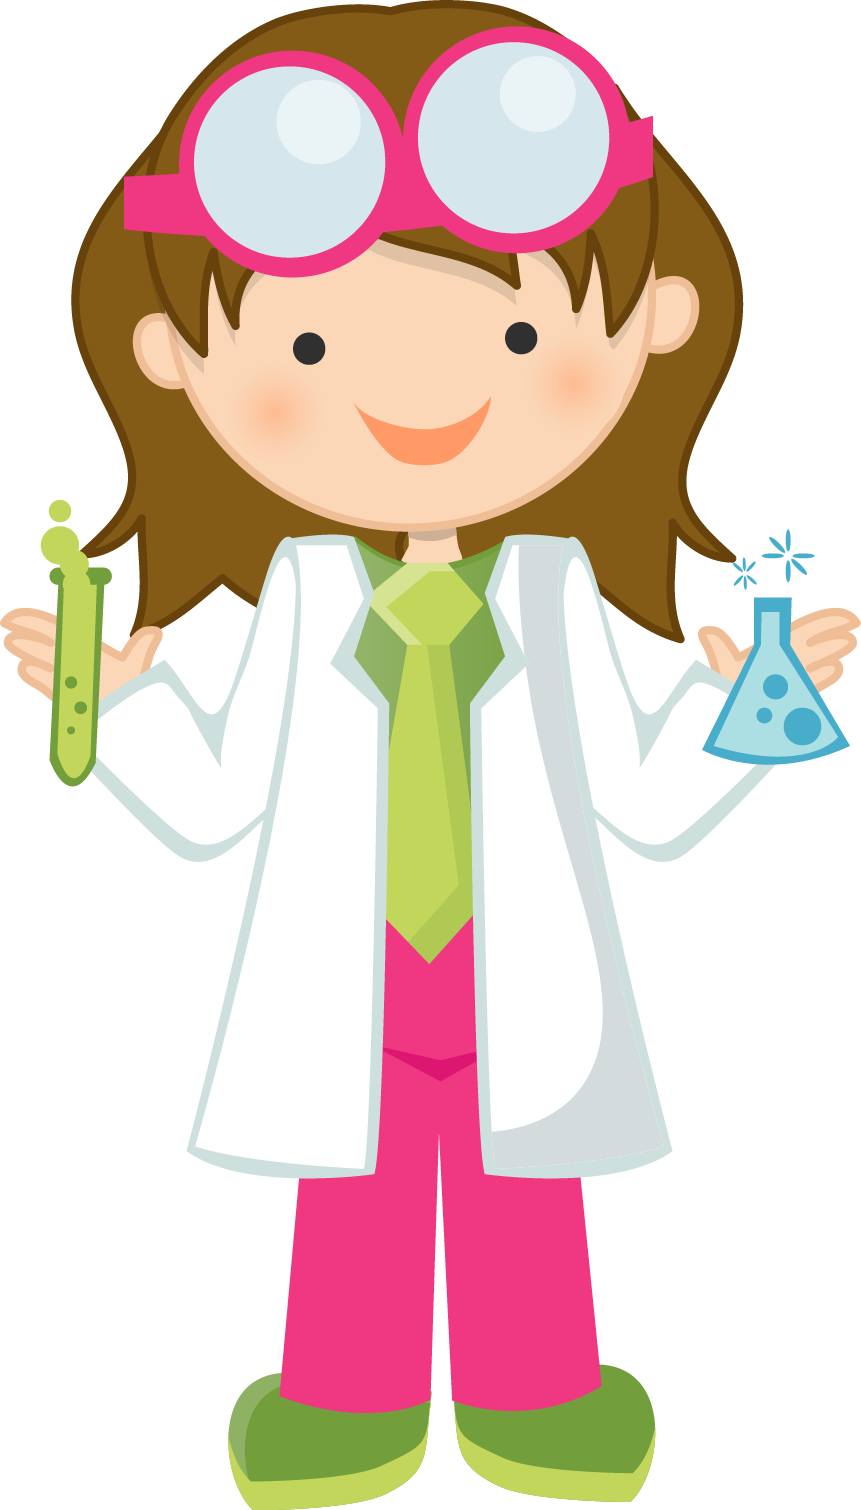 Gi drawing elementary. Girl scientist free clipart